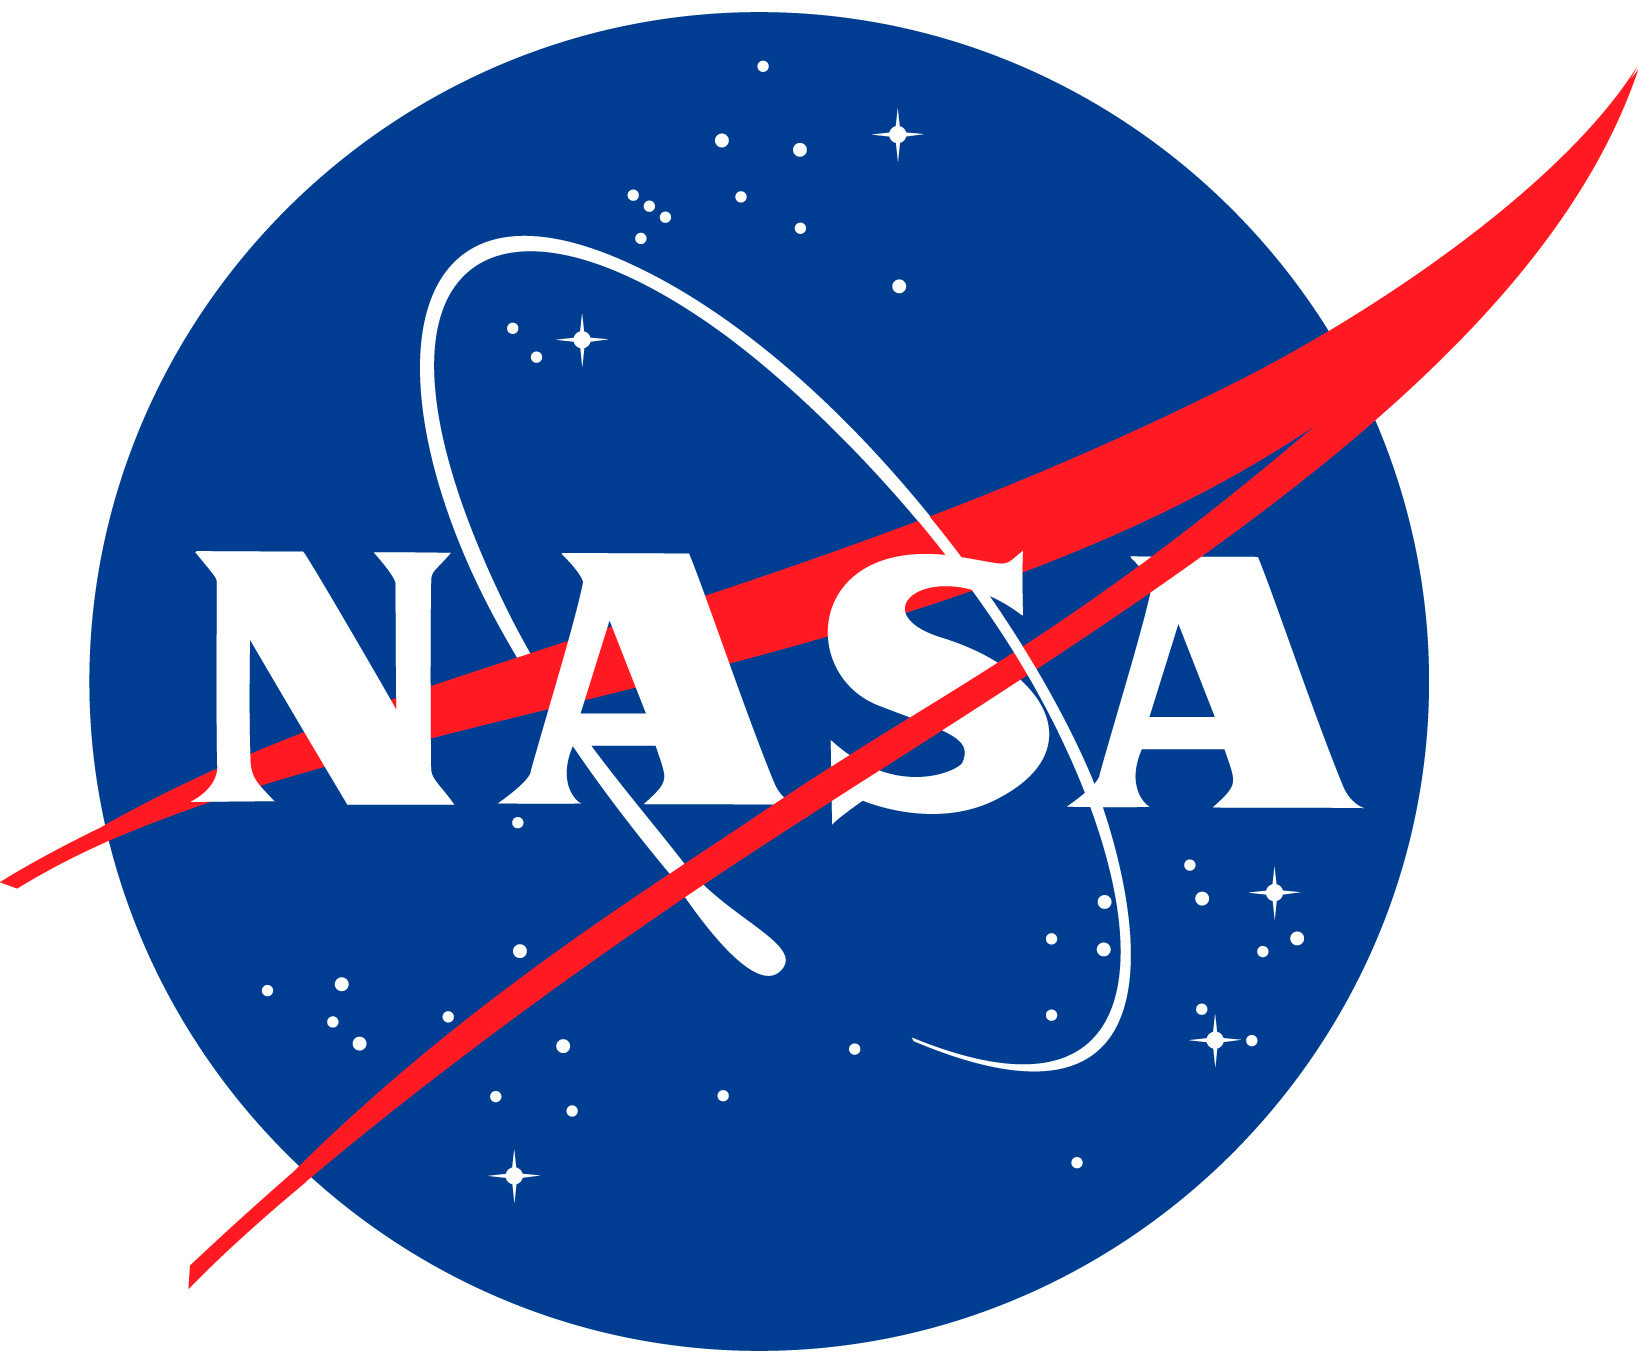 Group logo of NASA